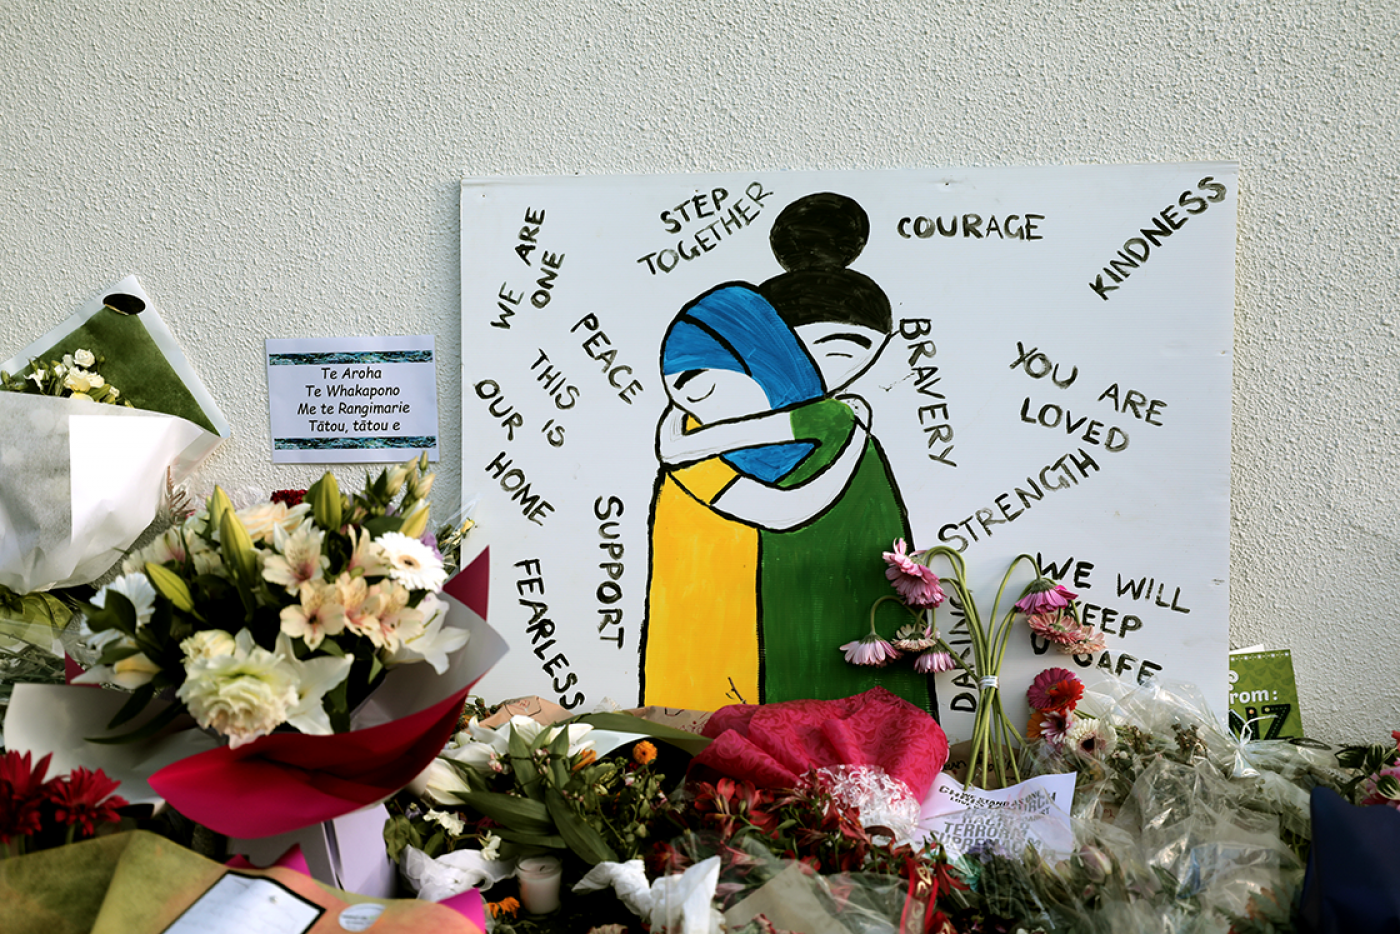 Survivors of the Christchurch Terror Attack Talk to Mee About the Memories of the Event That Ripped Their Small Community Open